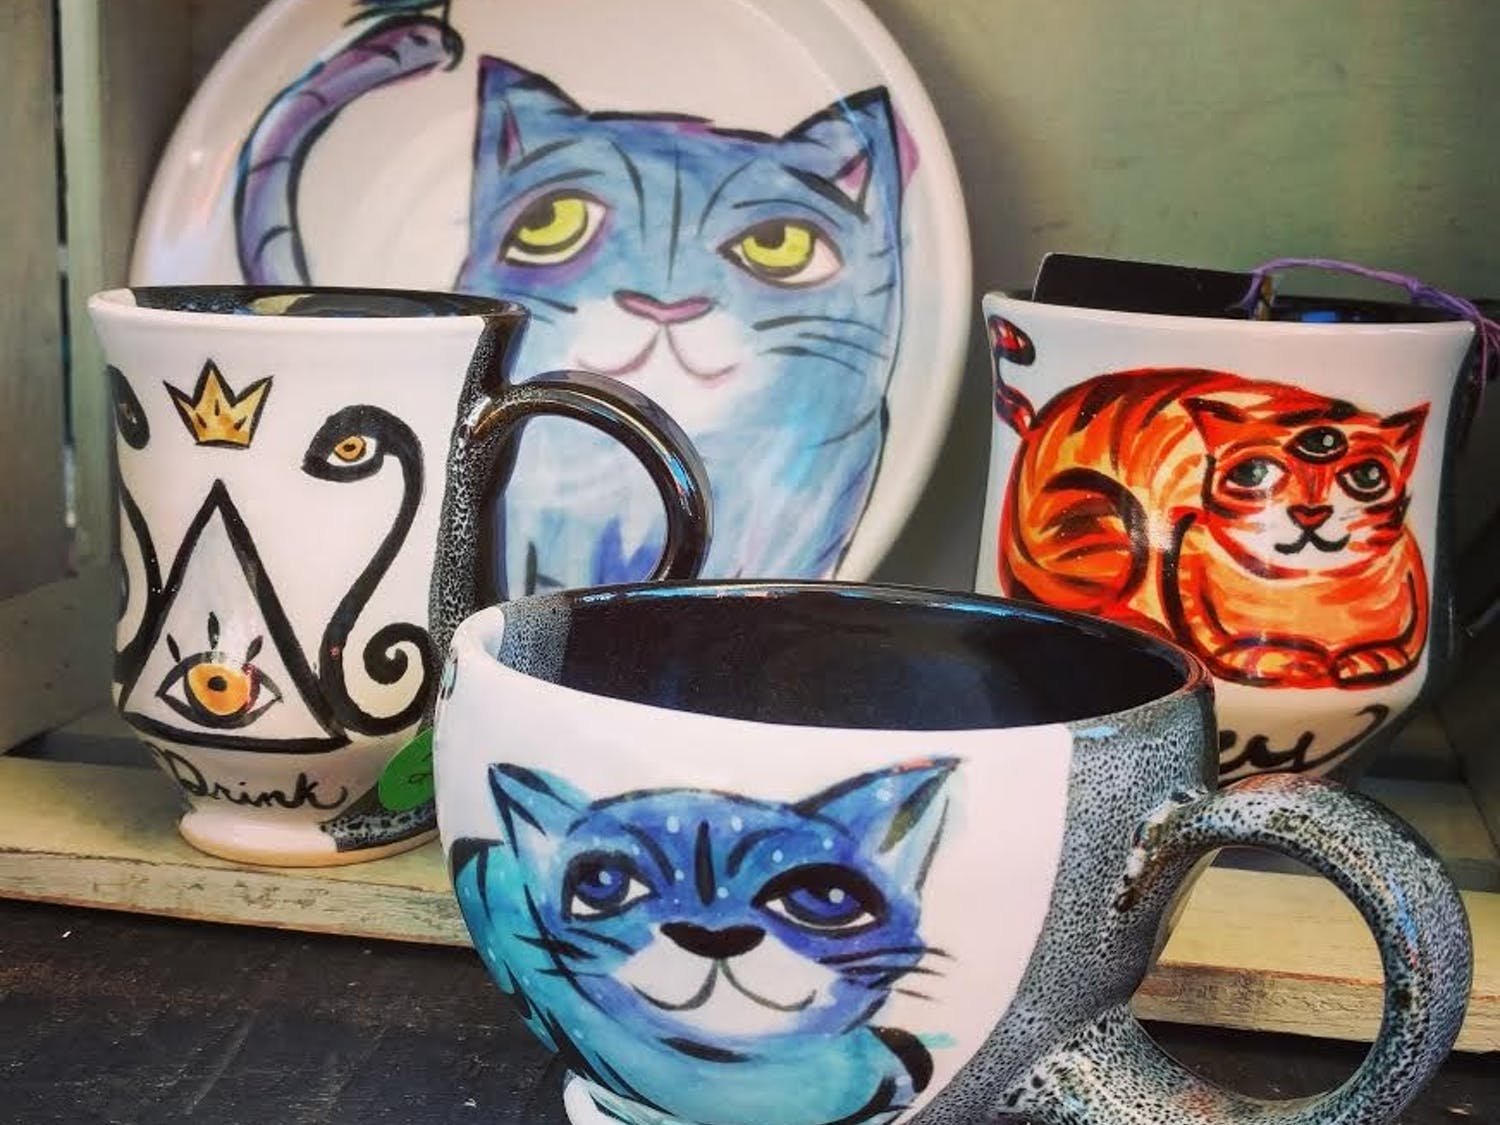 The Holiday Bazaar Craft and Art Market will be held at The Commons in Carrboro November 13th.  Photo Courtesy of Meghan Morgan.